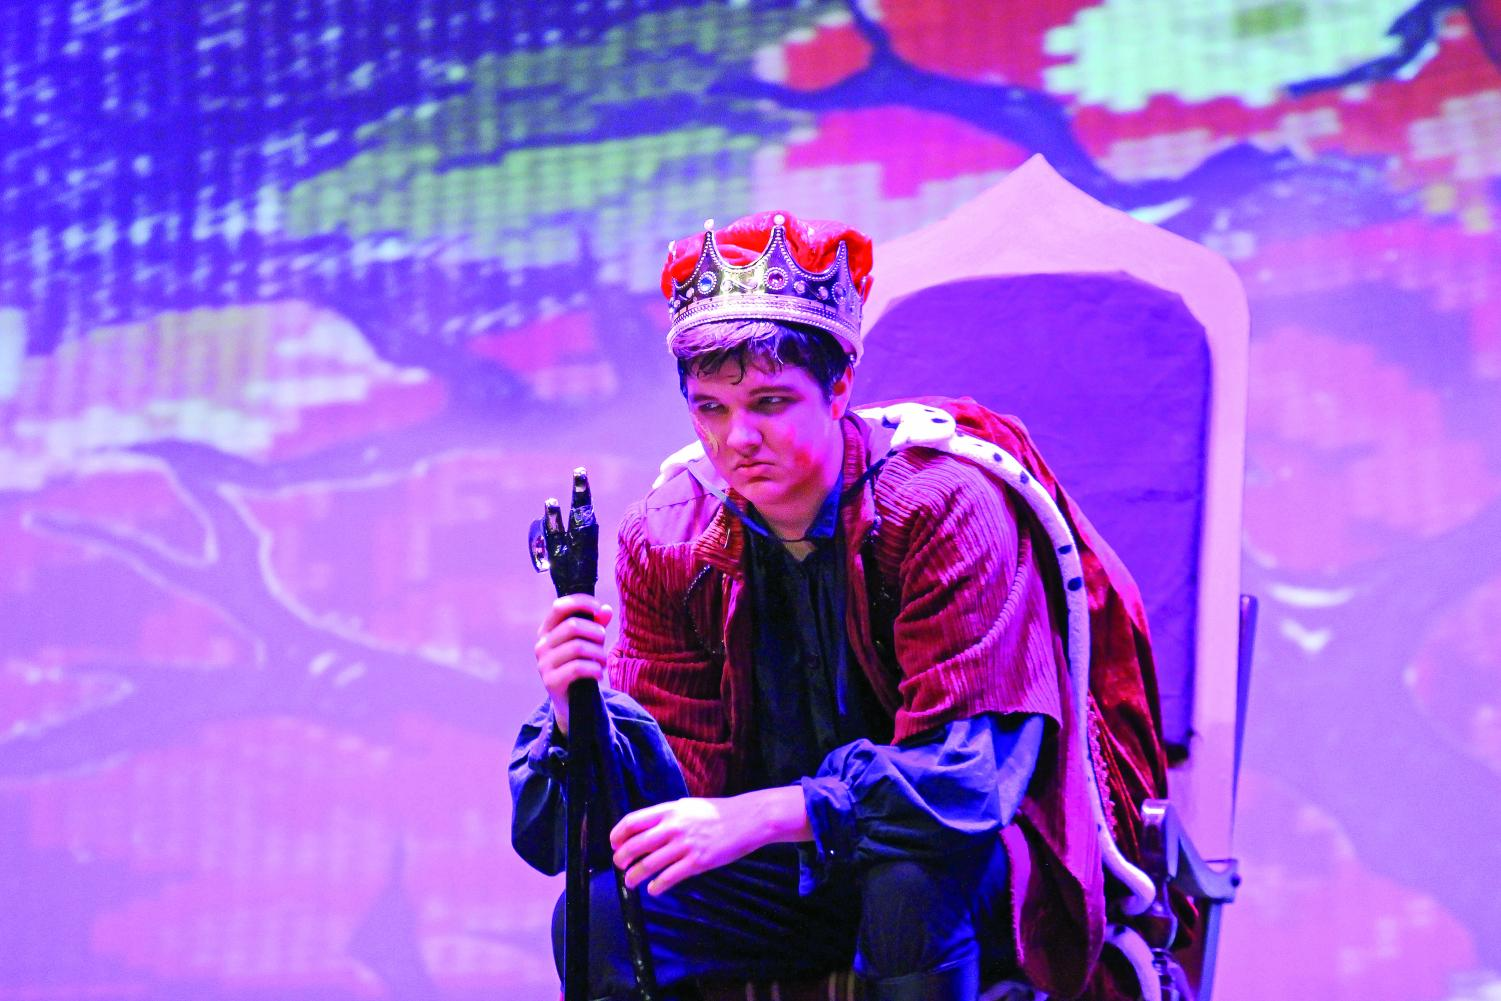 Gloucester glares at his subjects: Senior Ben Harmon, acting as Gloucester, sits in his throne after he has become king. Harmon sets the scene of his rise to power and newfound authority with an angry glance at his fellow castmates who are approaching him. Harmon continually radiates an aggressive attitude to get into character.